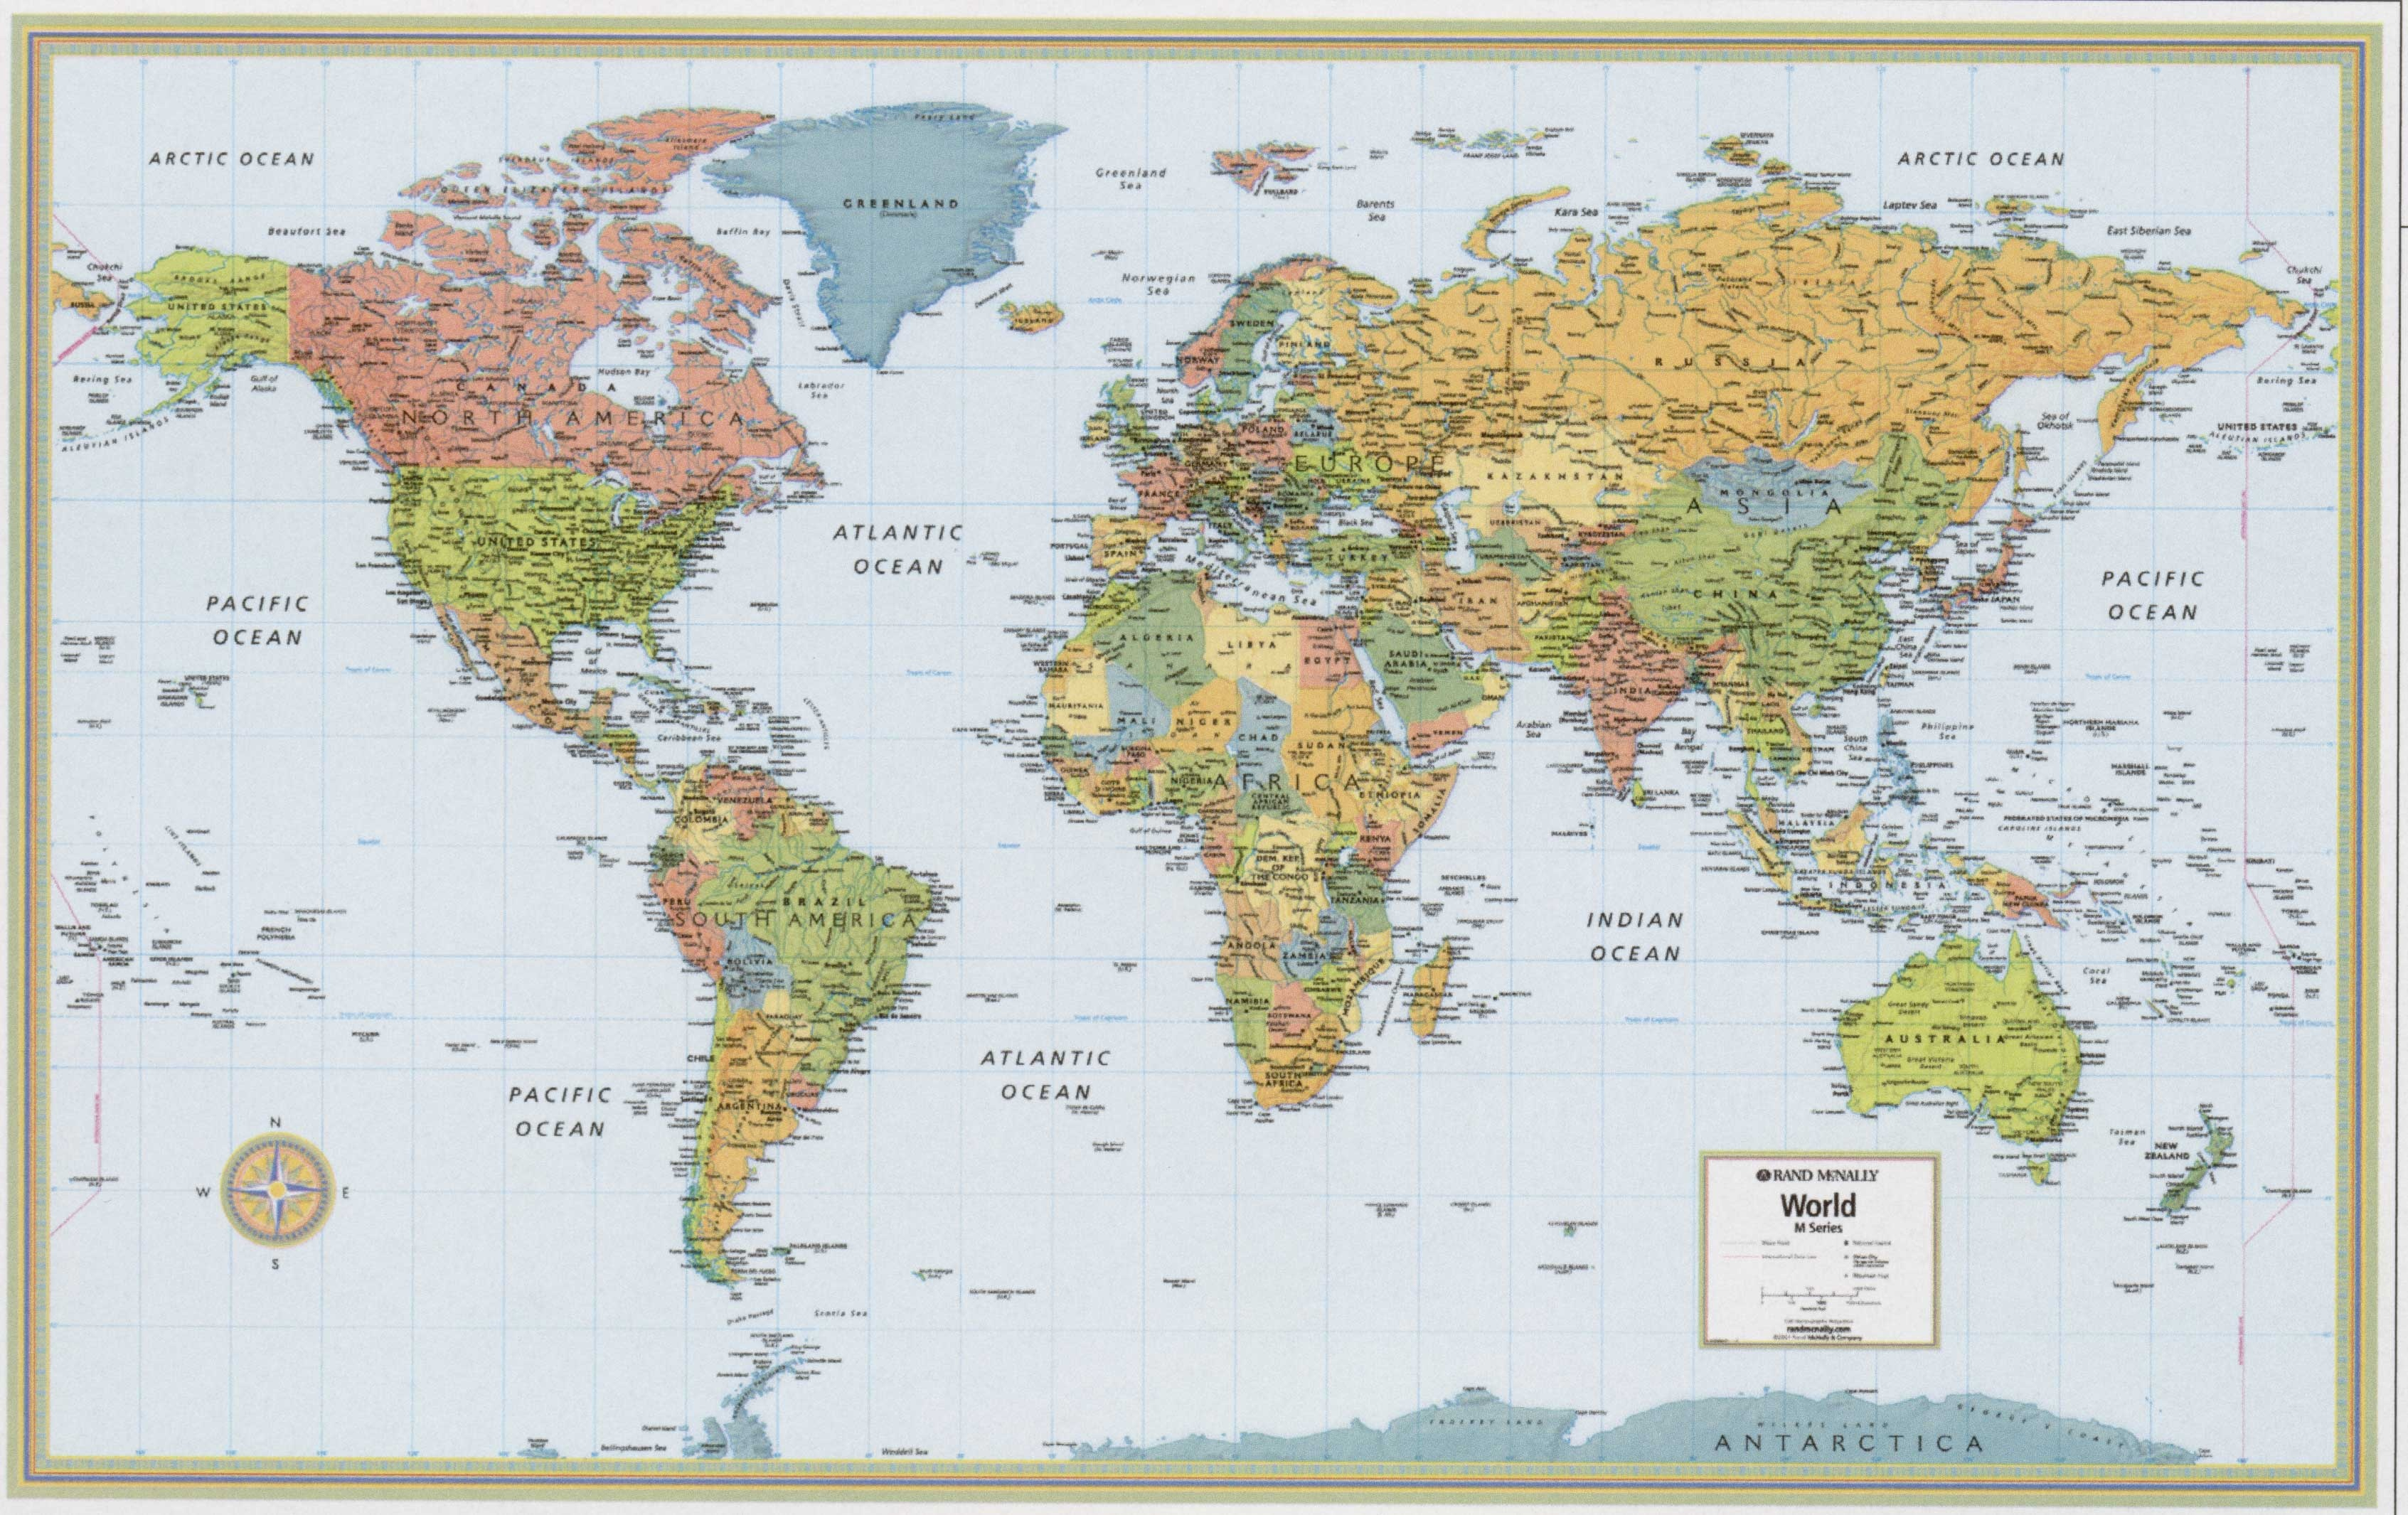 World Maps Free - World Maps - Map Pictures - Free Printable Maps